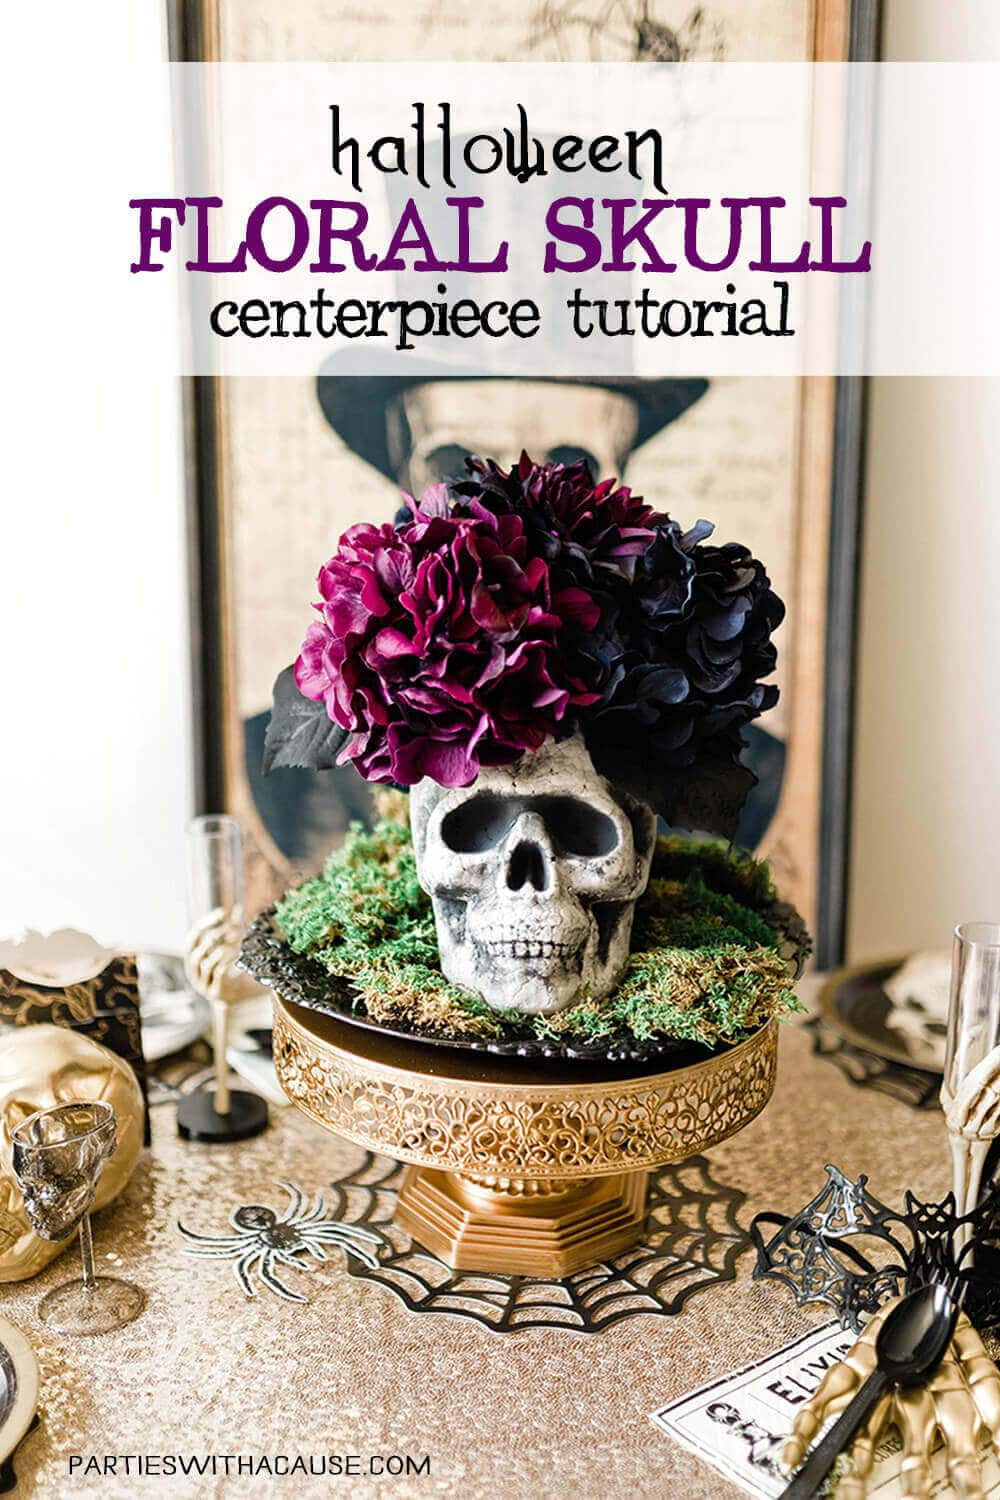 Floral Skull Centerpiece Tutorial